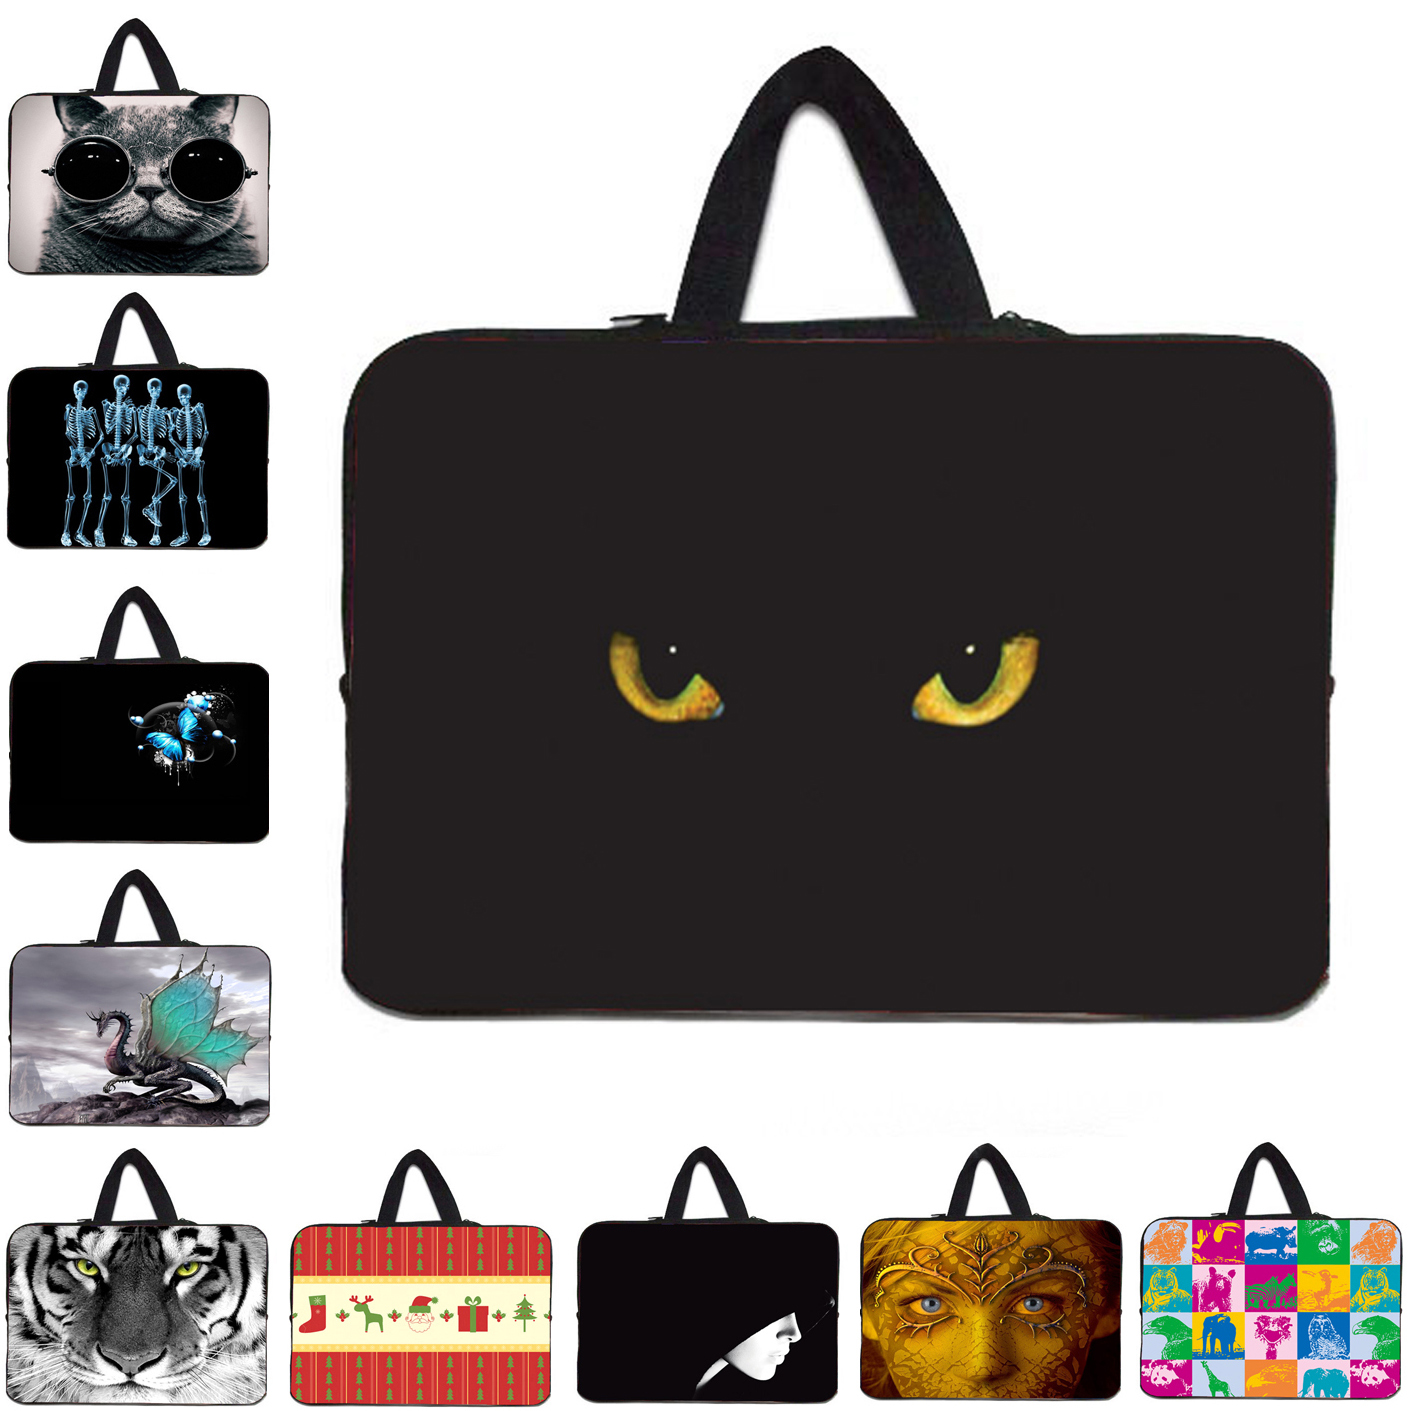 Sleeve Computer Pouch Bag 14 Inch 13 12 15 10 17 Laptop Case For Lenovo Dell Sony Chuwi hi12 10 Chromebook Bag 15.6 For Huawei